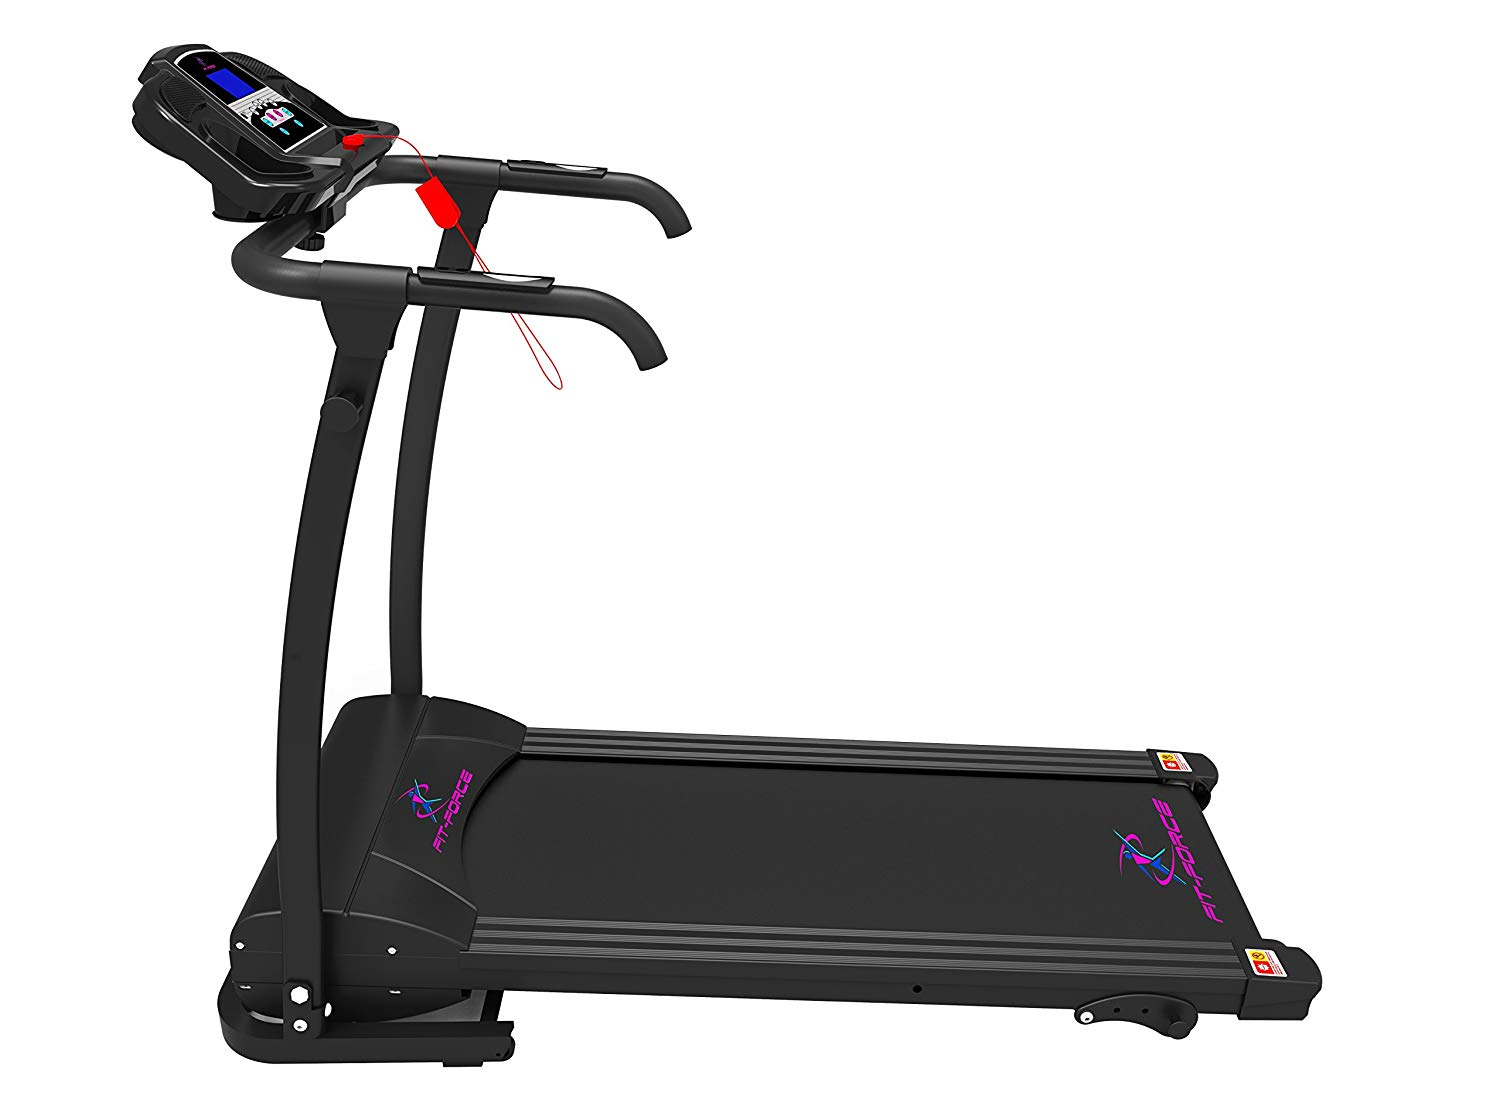 Analizamos la cinta para correr Fit-Force plegable de 1500W